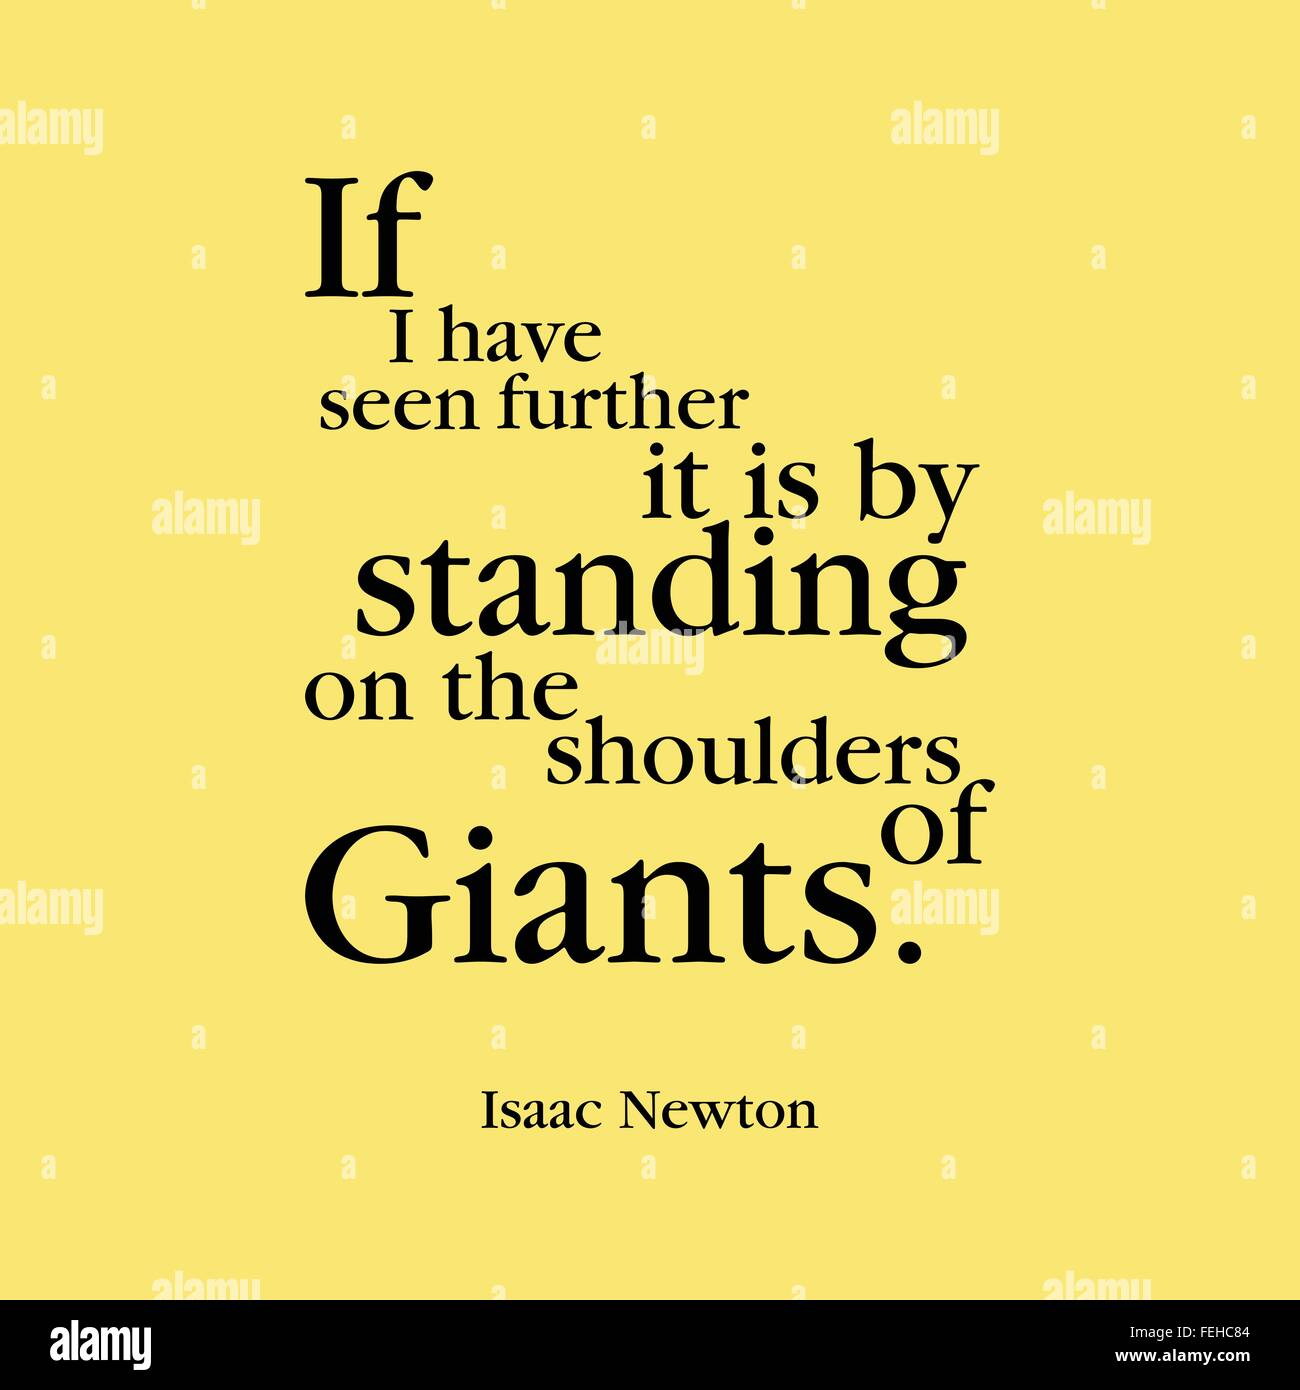 'If I have seen further it is by standing on the shoulders of giants.' Isaac Newton - Stock Vector